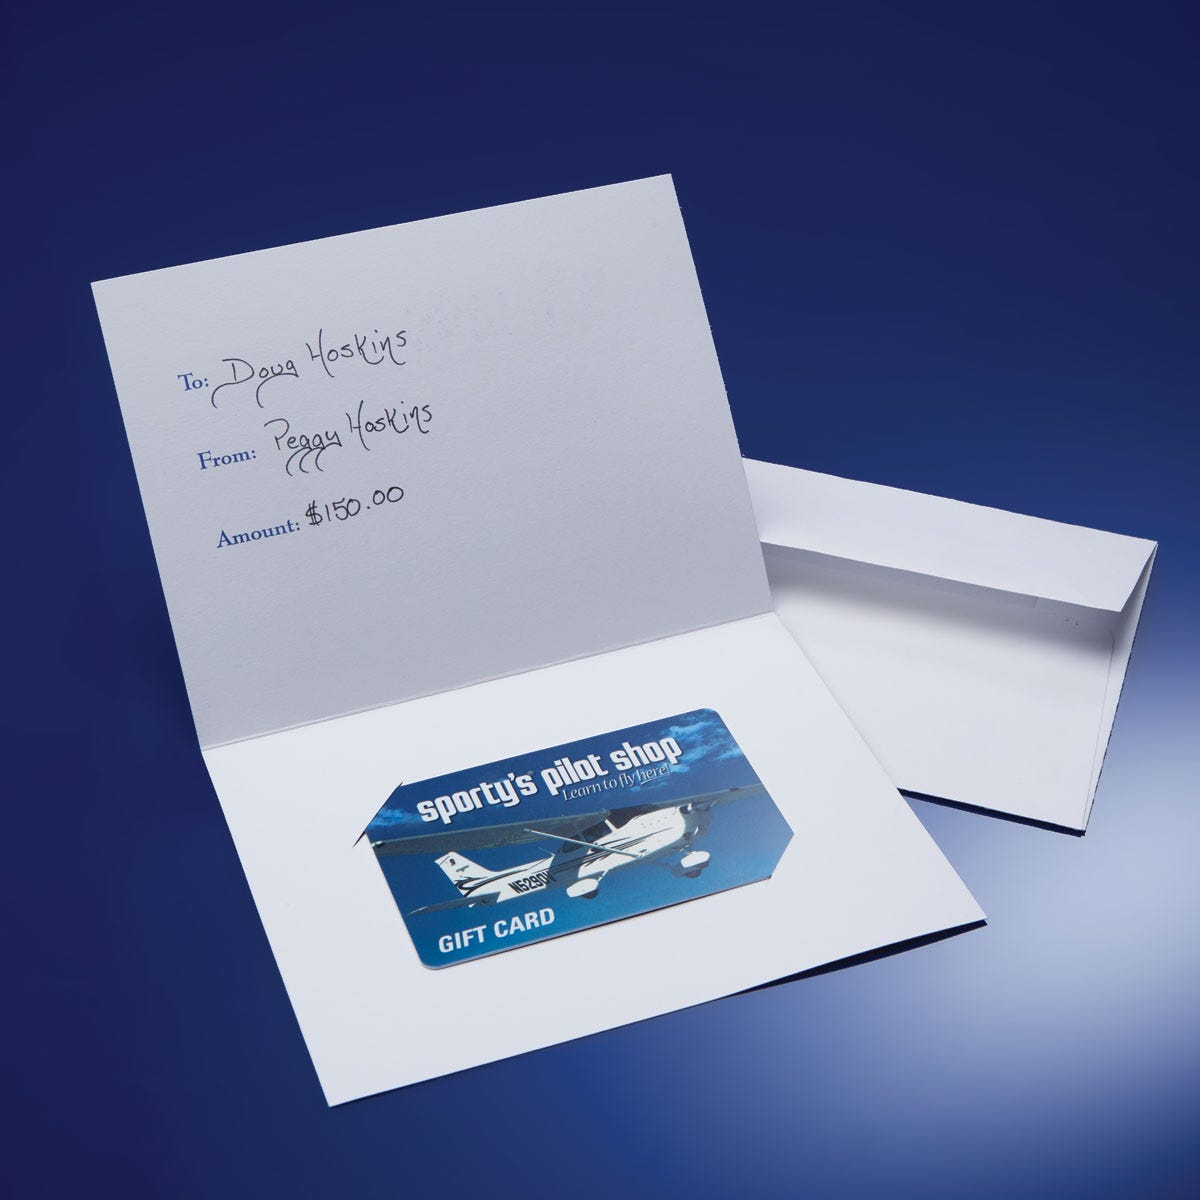 Gift Card/Gift Certificate - from Sporty\'s Pilot Shop